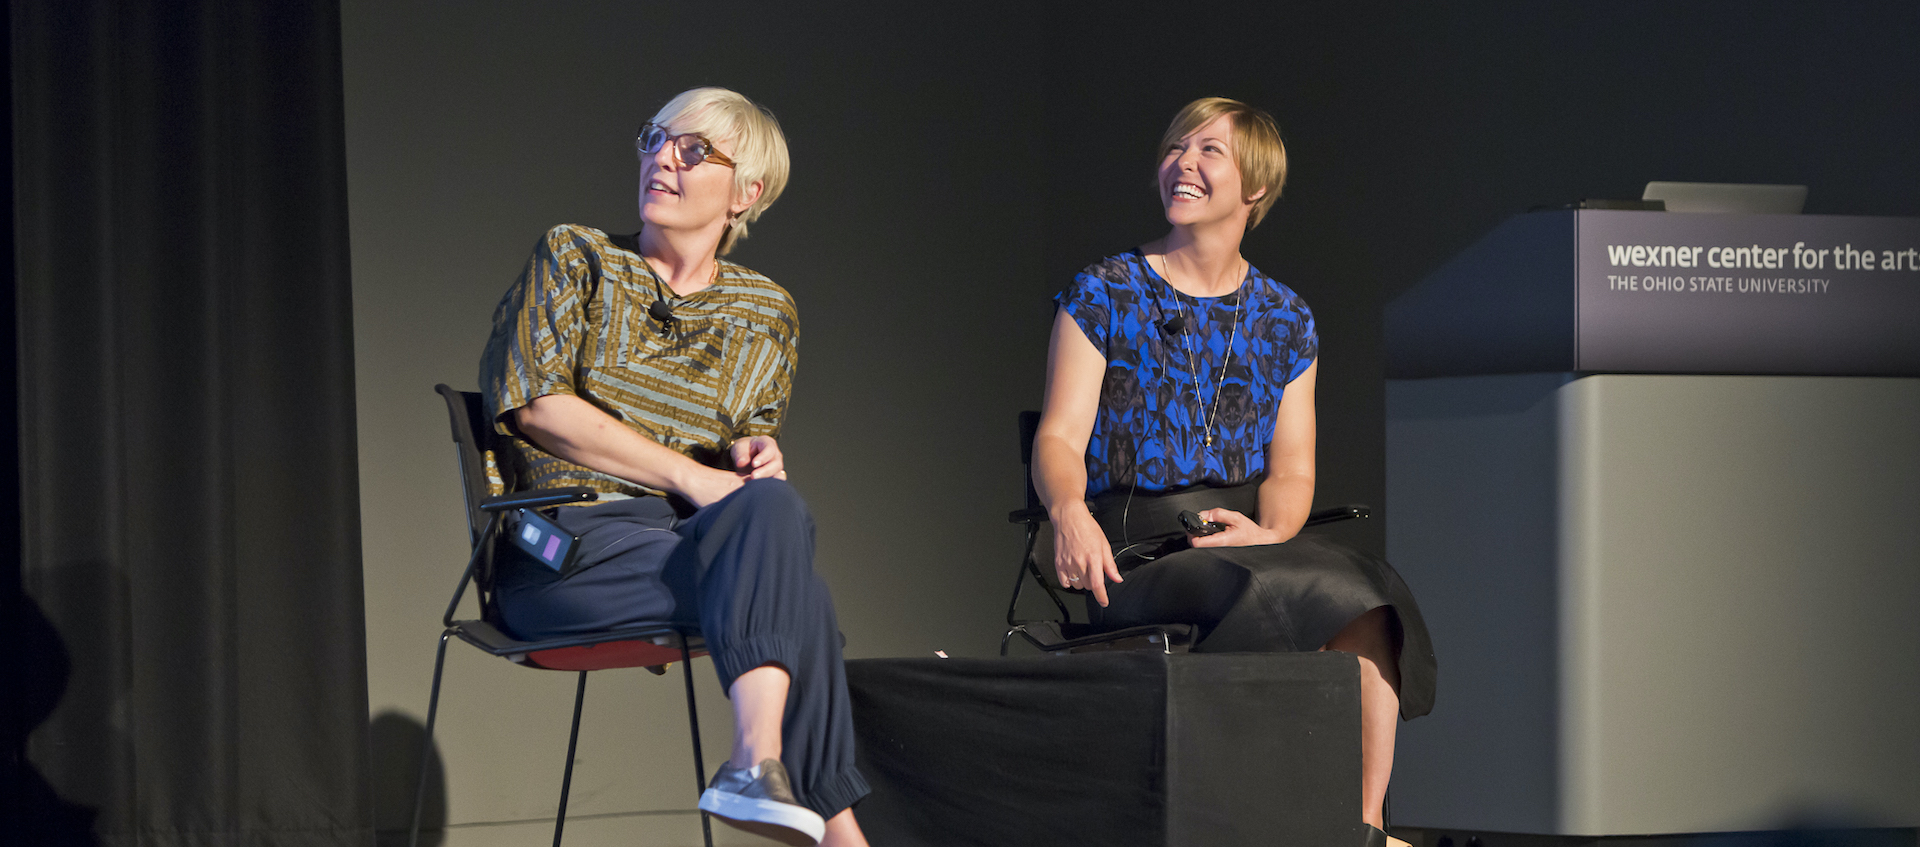 Helen Molesworth and Ruth Erickson at the Wexner Center for the Arts